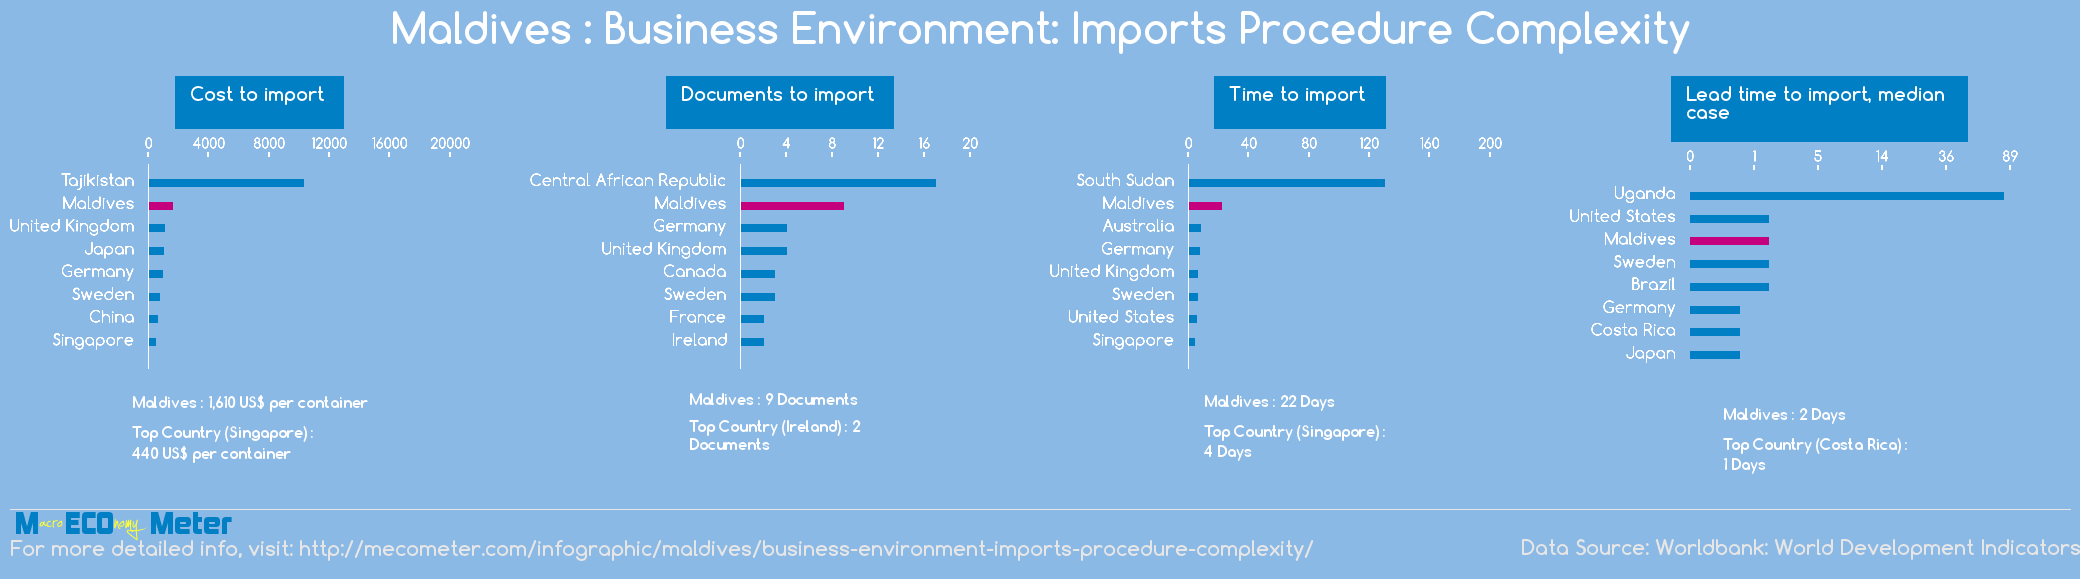 Maldives : Business Environment: Imports Procedure Complexity